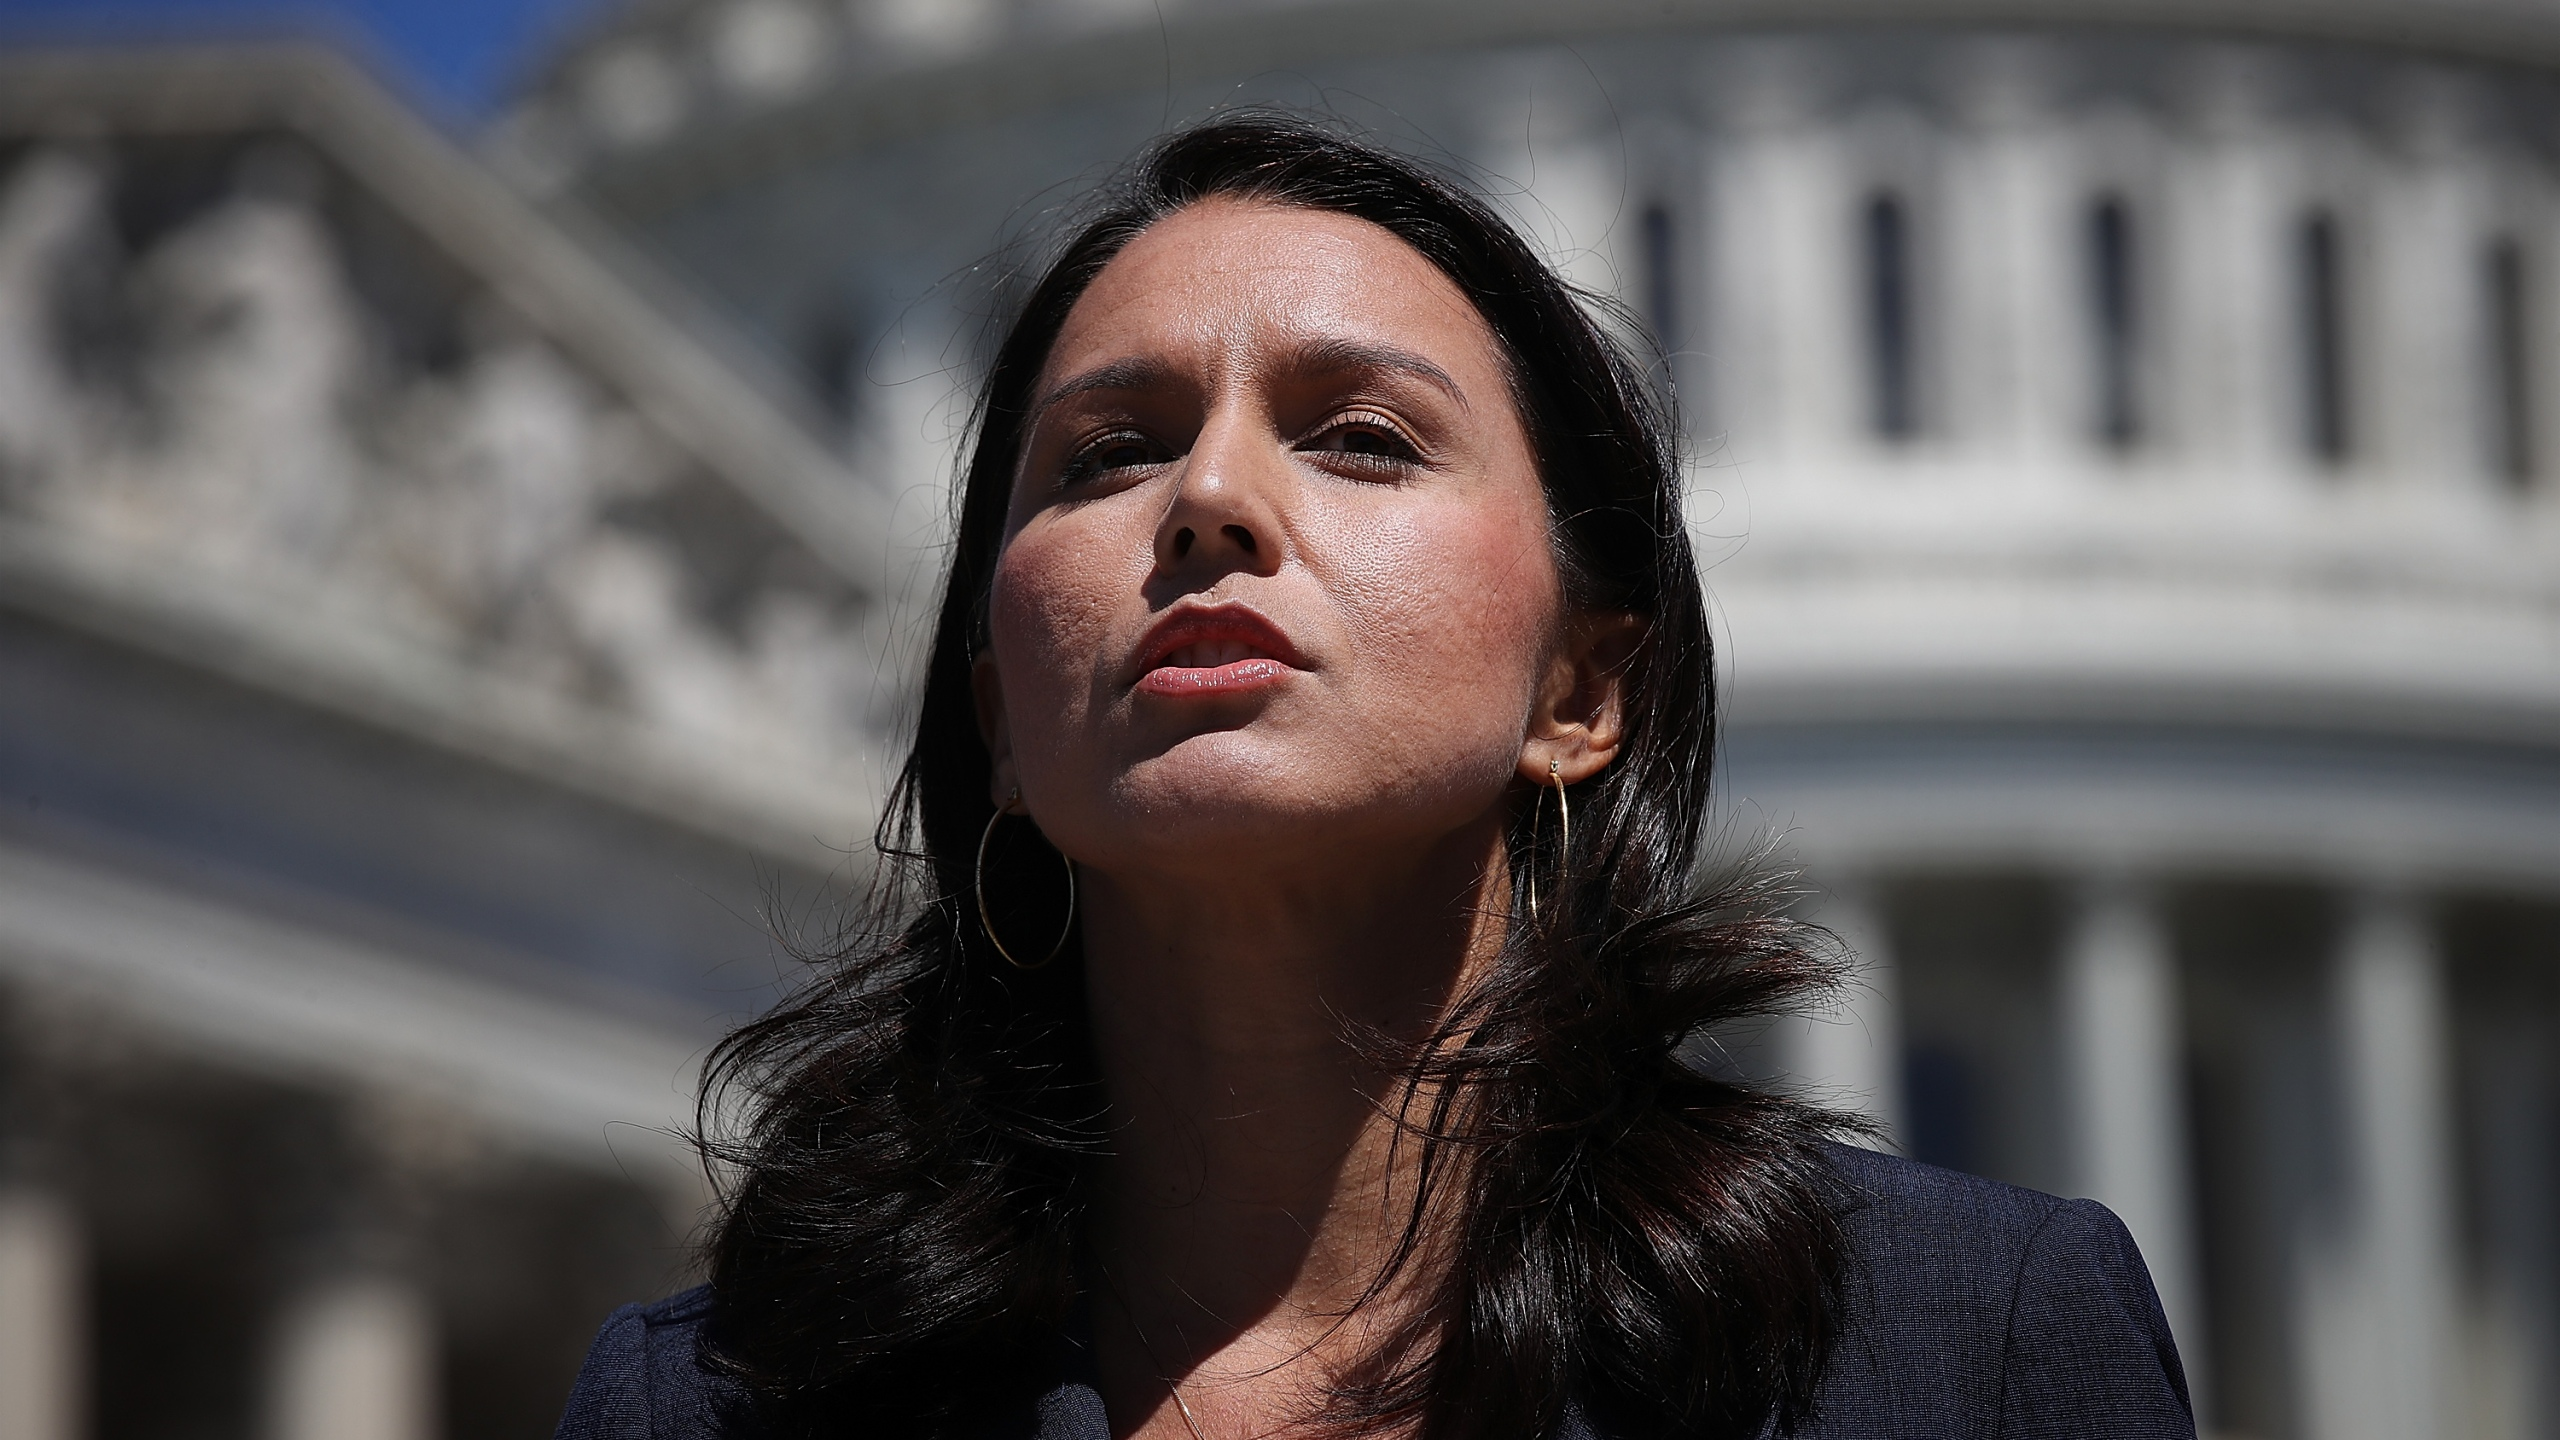 Rep. Tulsi Gabbard (D-HI) speaks at a press conference on House Resolution 922 outside the U.S. Capitol July 18, 2018 in Washington, DC. (Credit: Win McNamee/Getty Images)